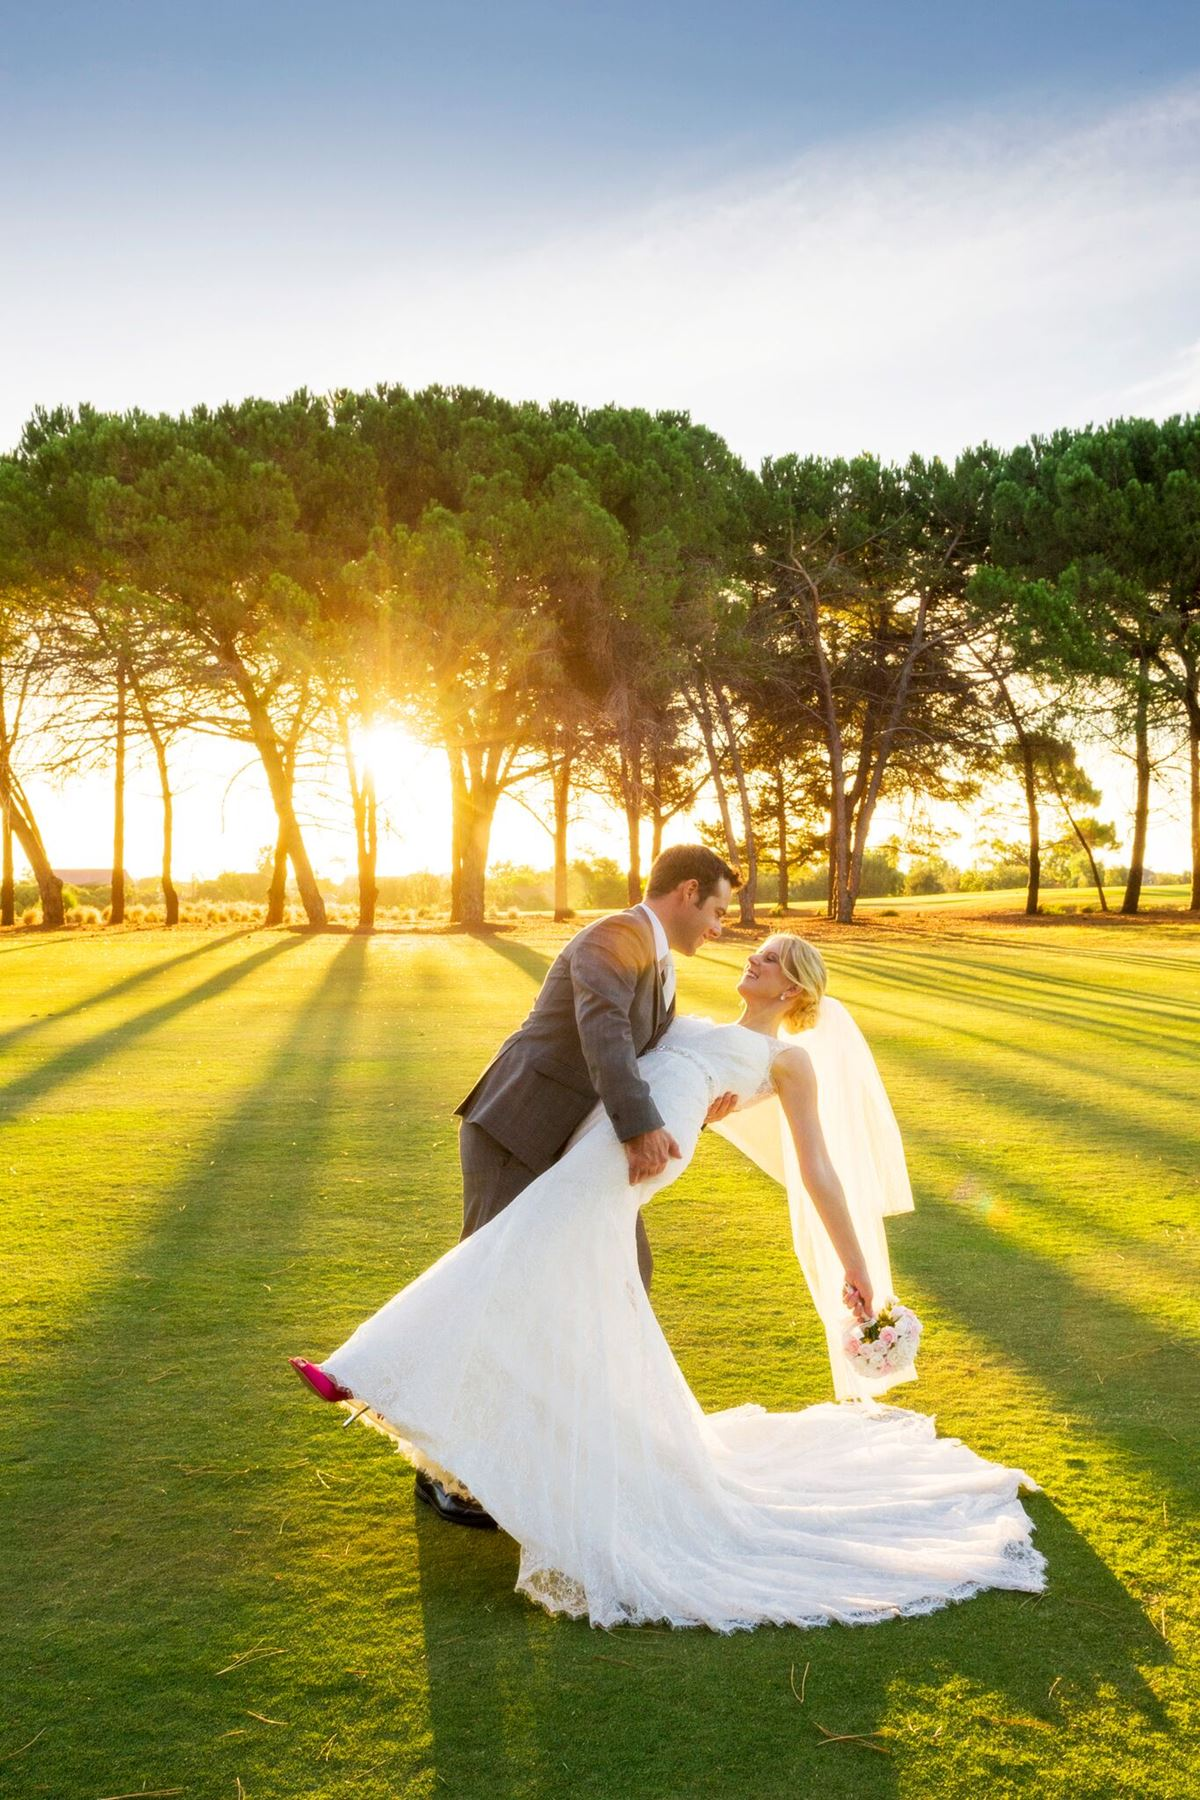 Start planning the wedding of your dreams